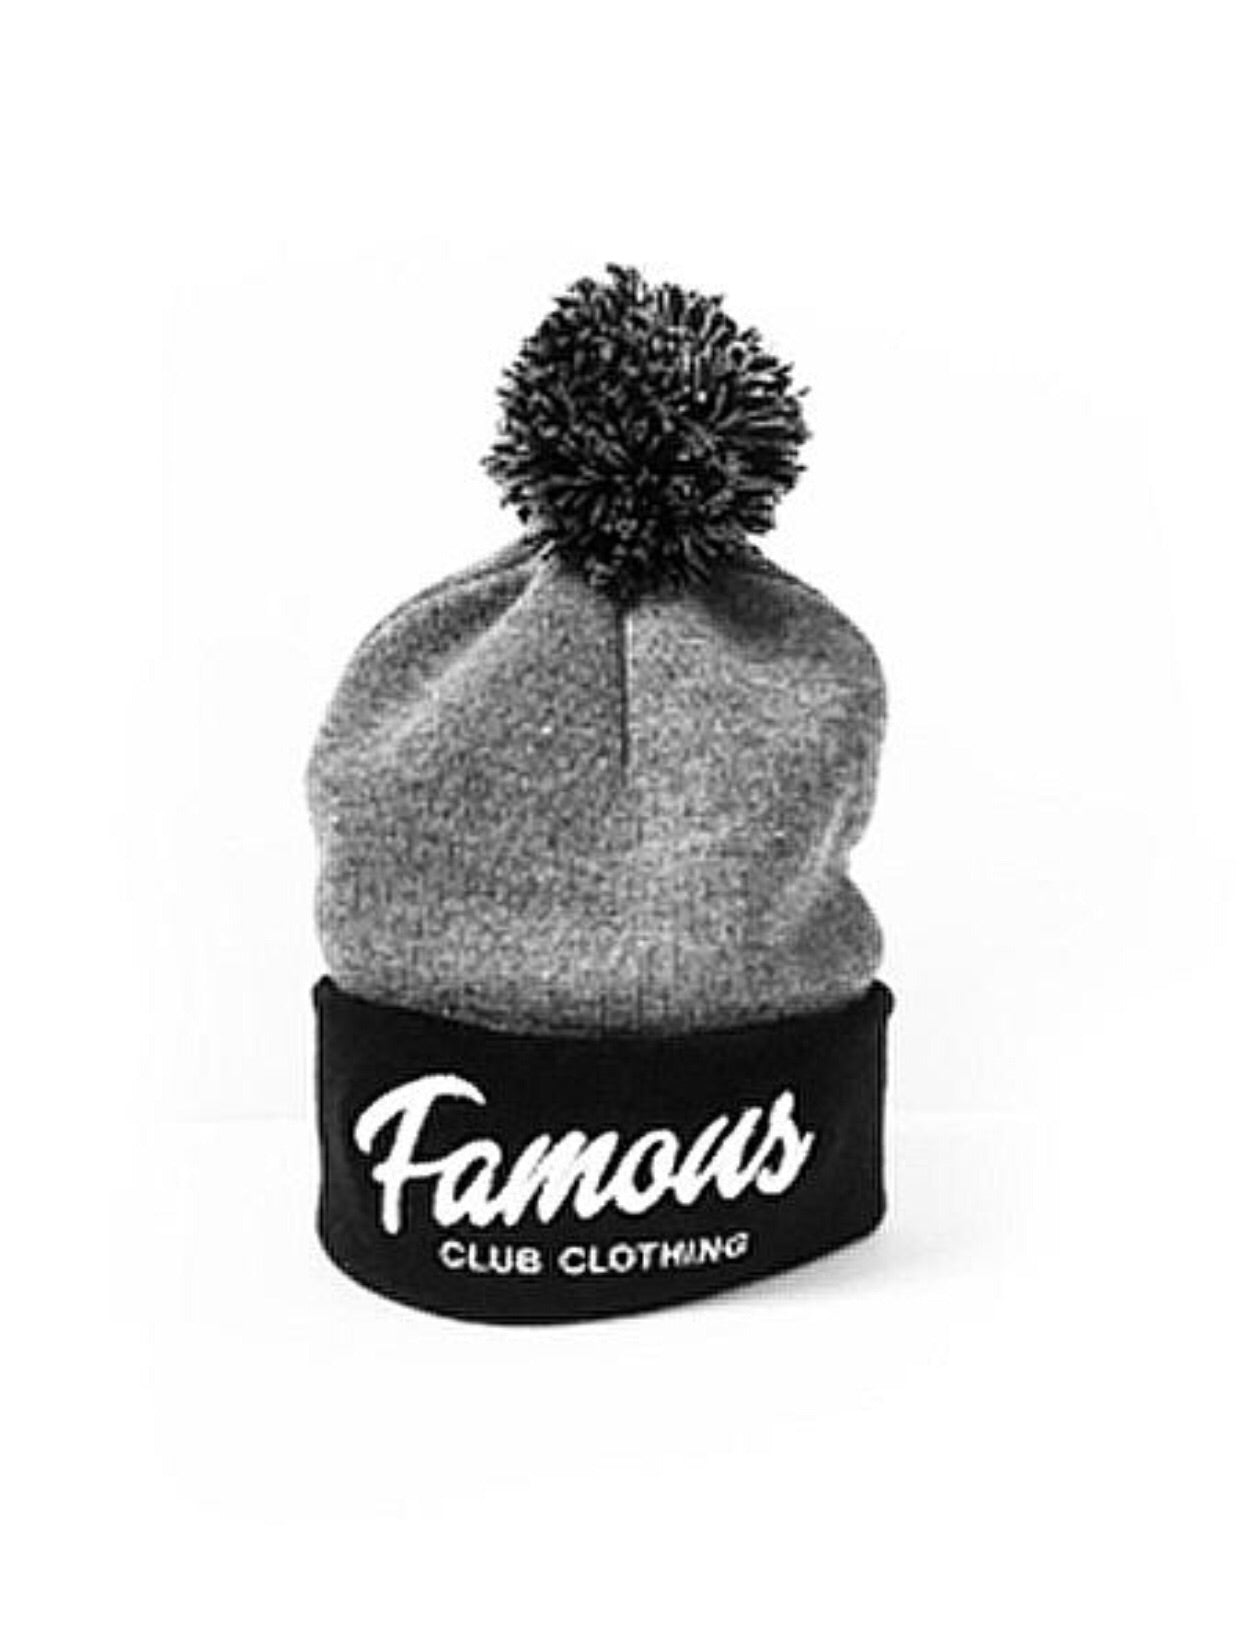 FAMOUS Script Beanie Black/Heather Grey - Famous Club Clothing